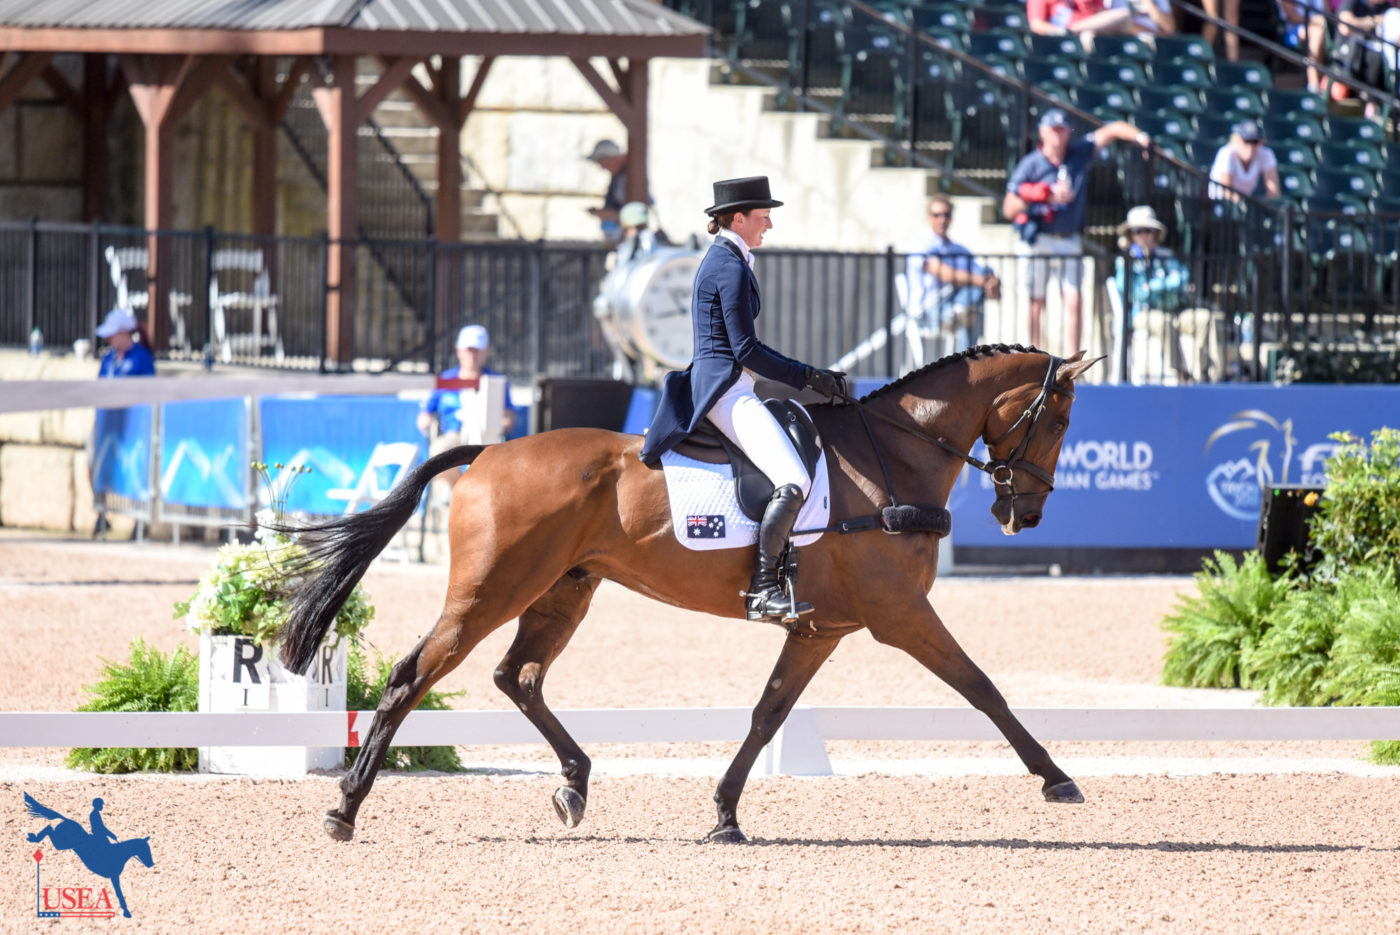 7th - Emma McNab and Fernhill Tabasco (AUS)